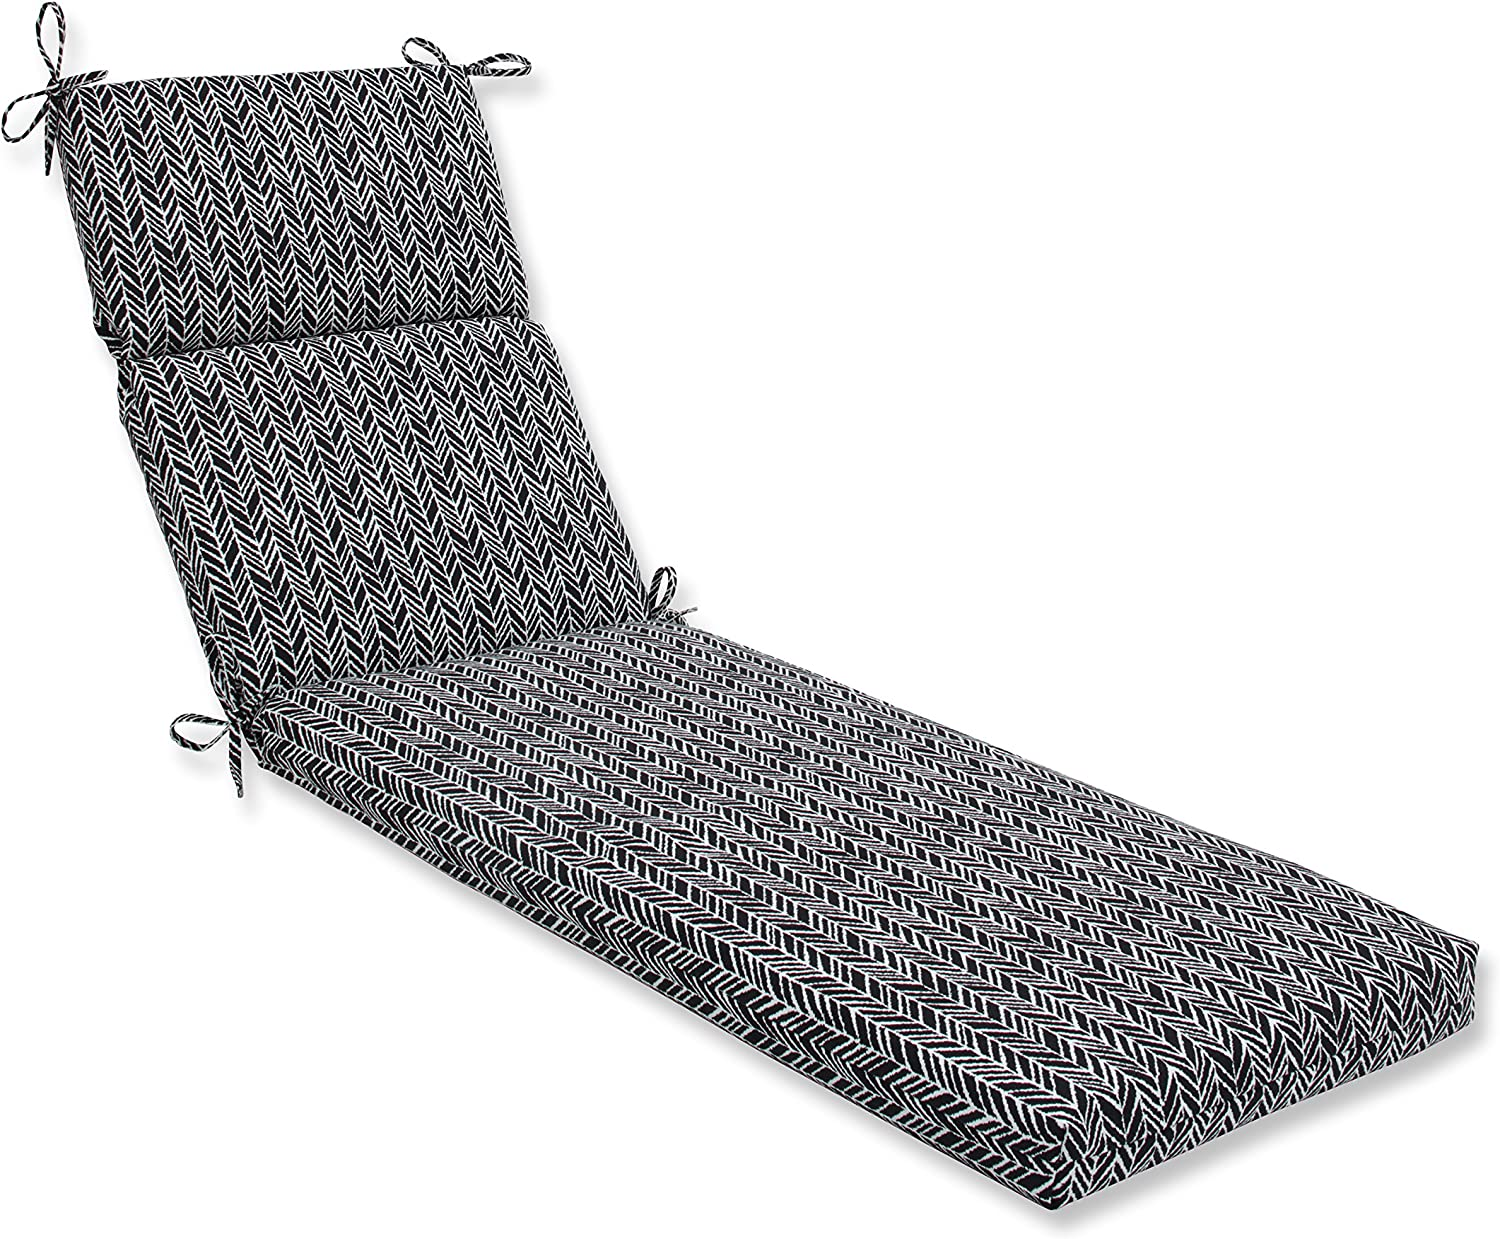 "Pillow Perfect Outdoor/Indoor Herringbone Night Chaise Lounge Cushion, 72.5"" x 21"", Black"